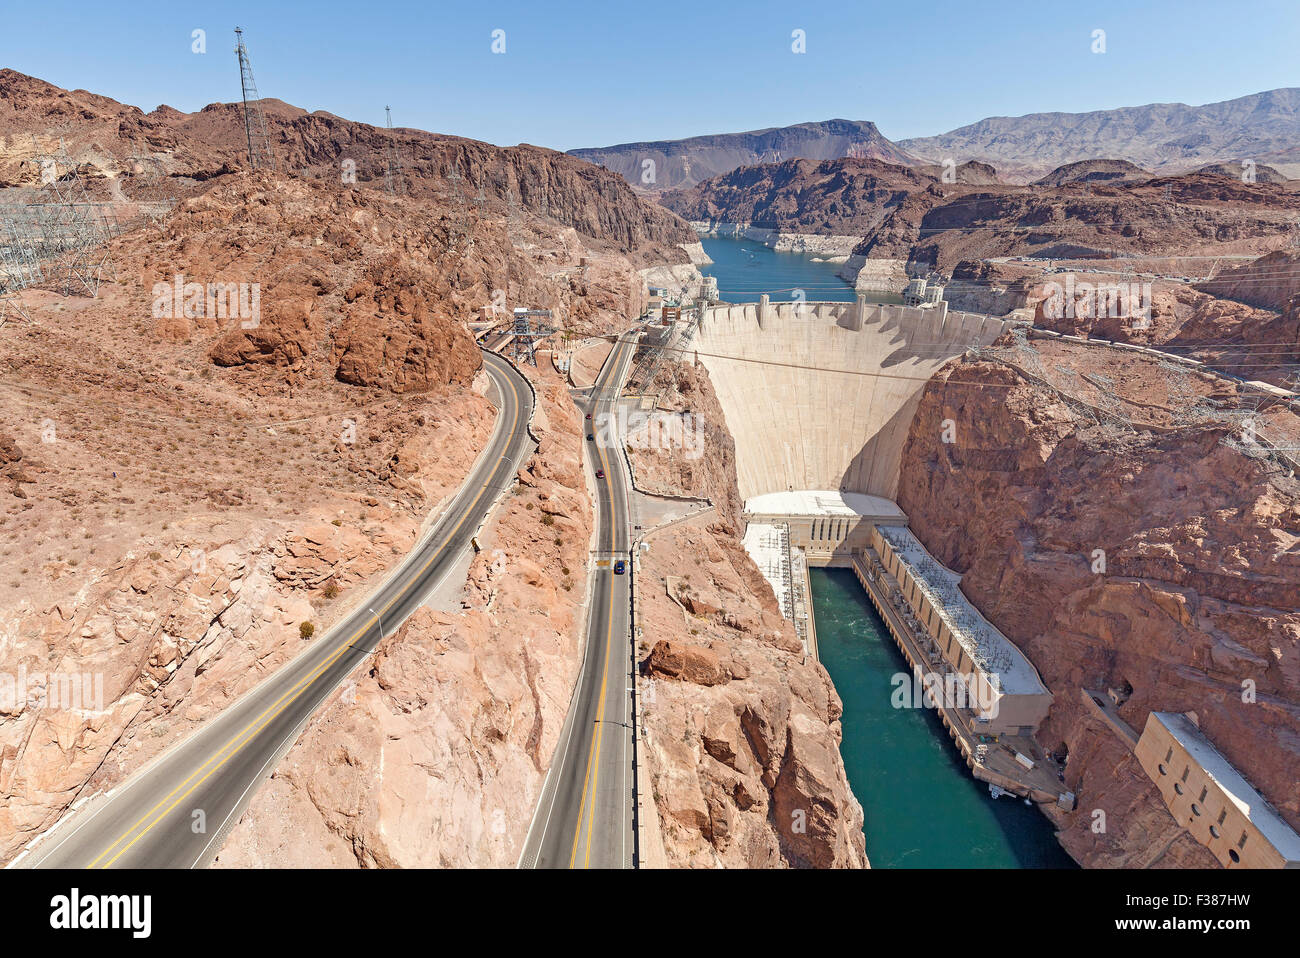 Hoover Dam, concrete arch gravity dam in the Black Canyon of